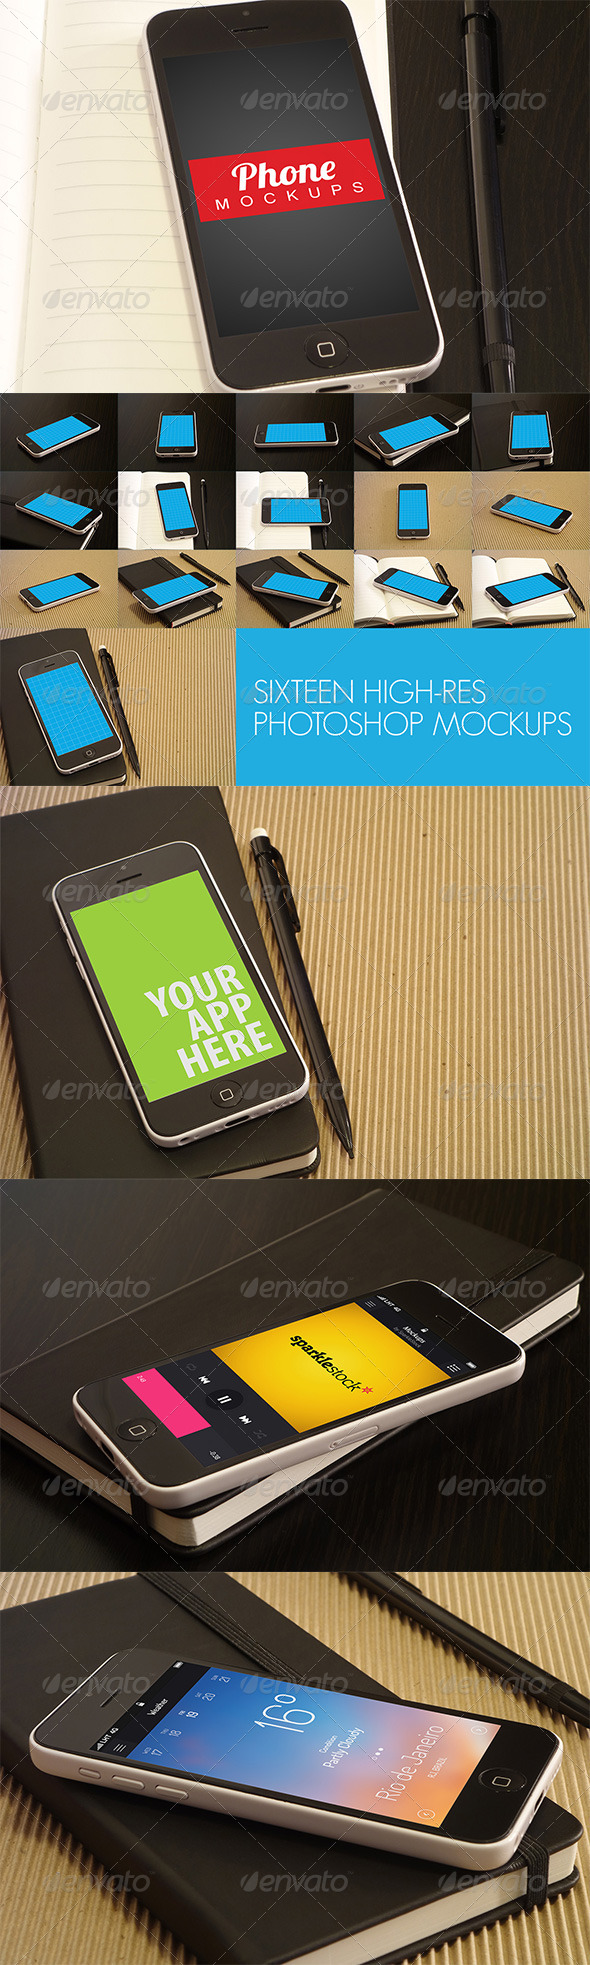 16 Phone Mockups - Mobile Displays